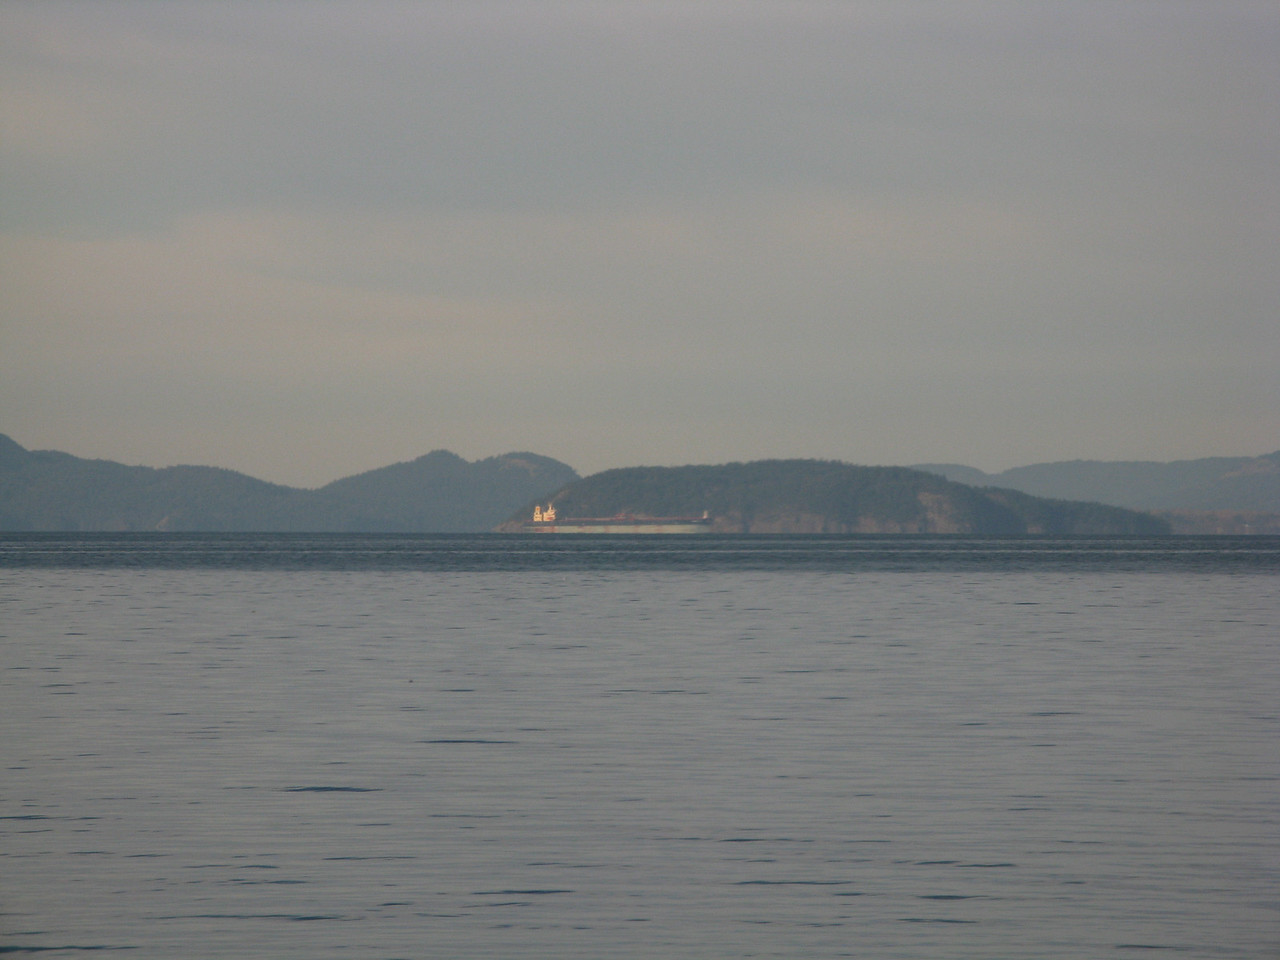 A ship heading north on Samish Bay south of Bellingham.